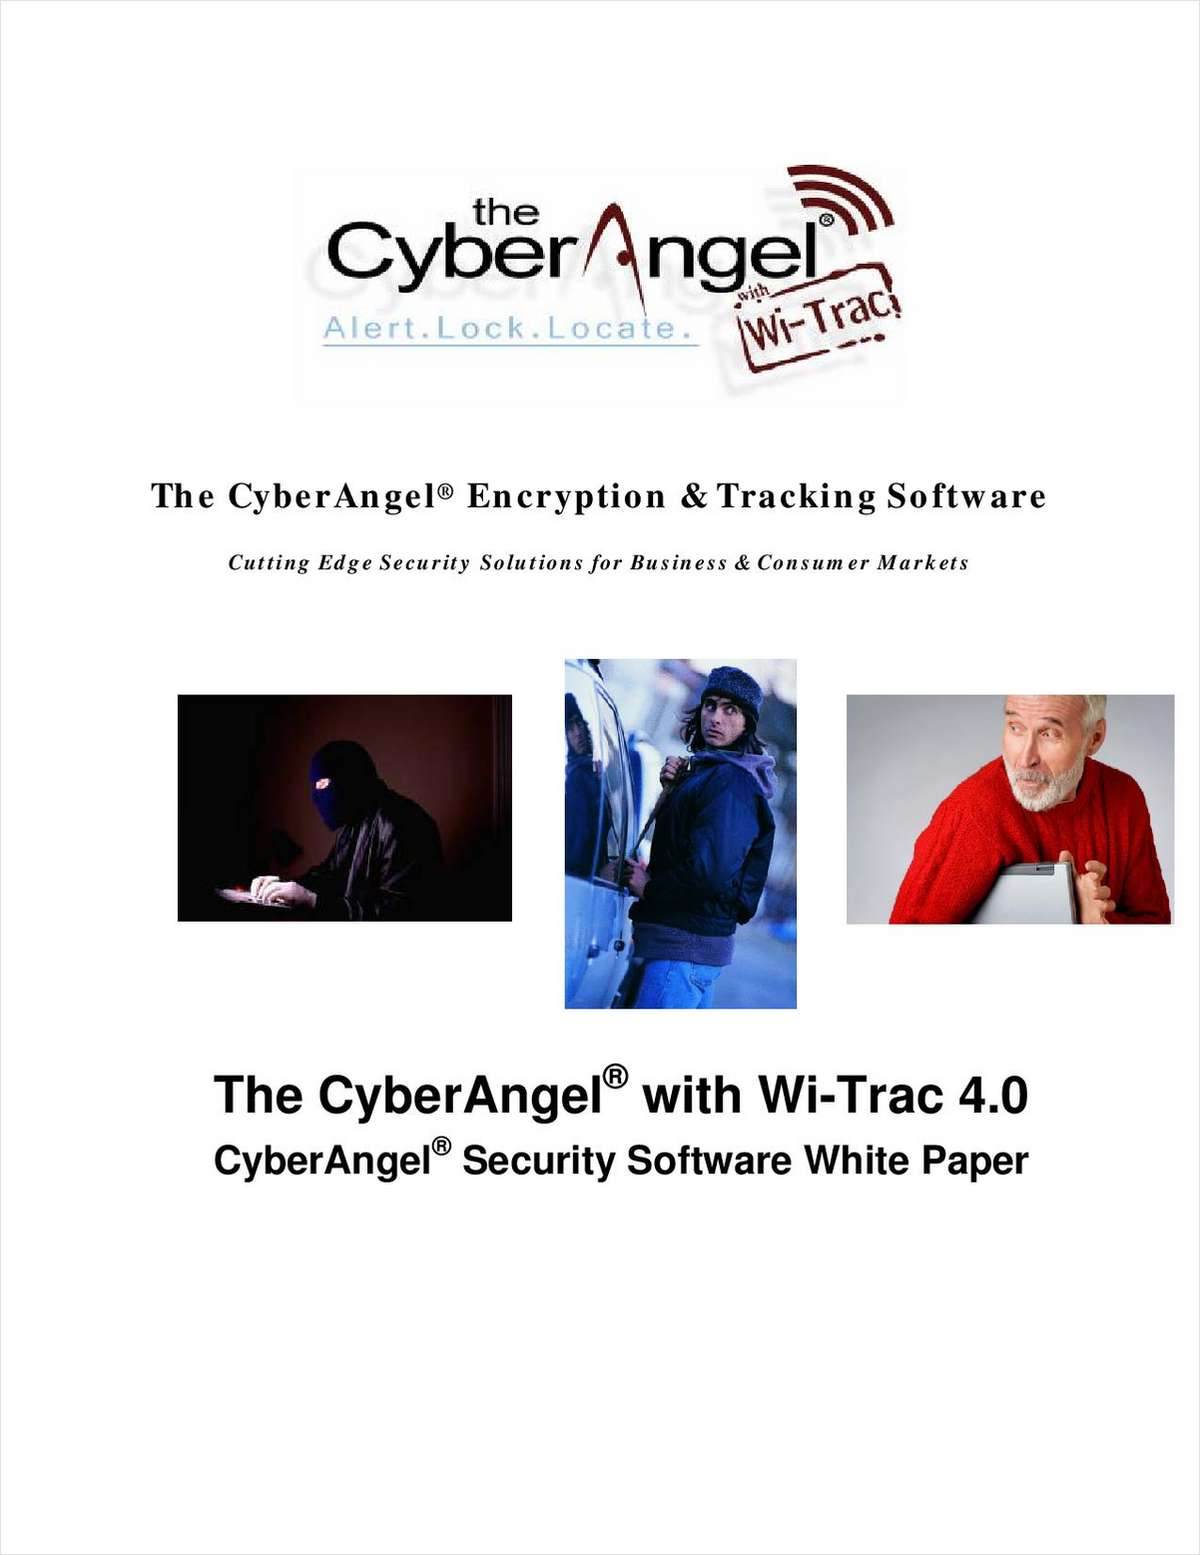 Security Solutions: The CyberAngel® with Wi-Trac 4.0